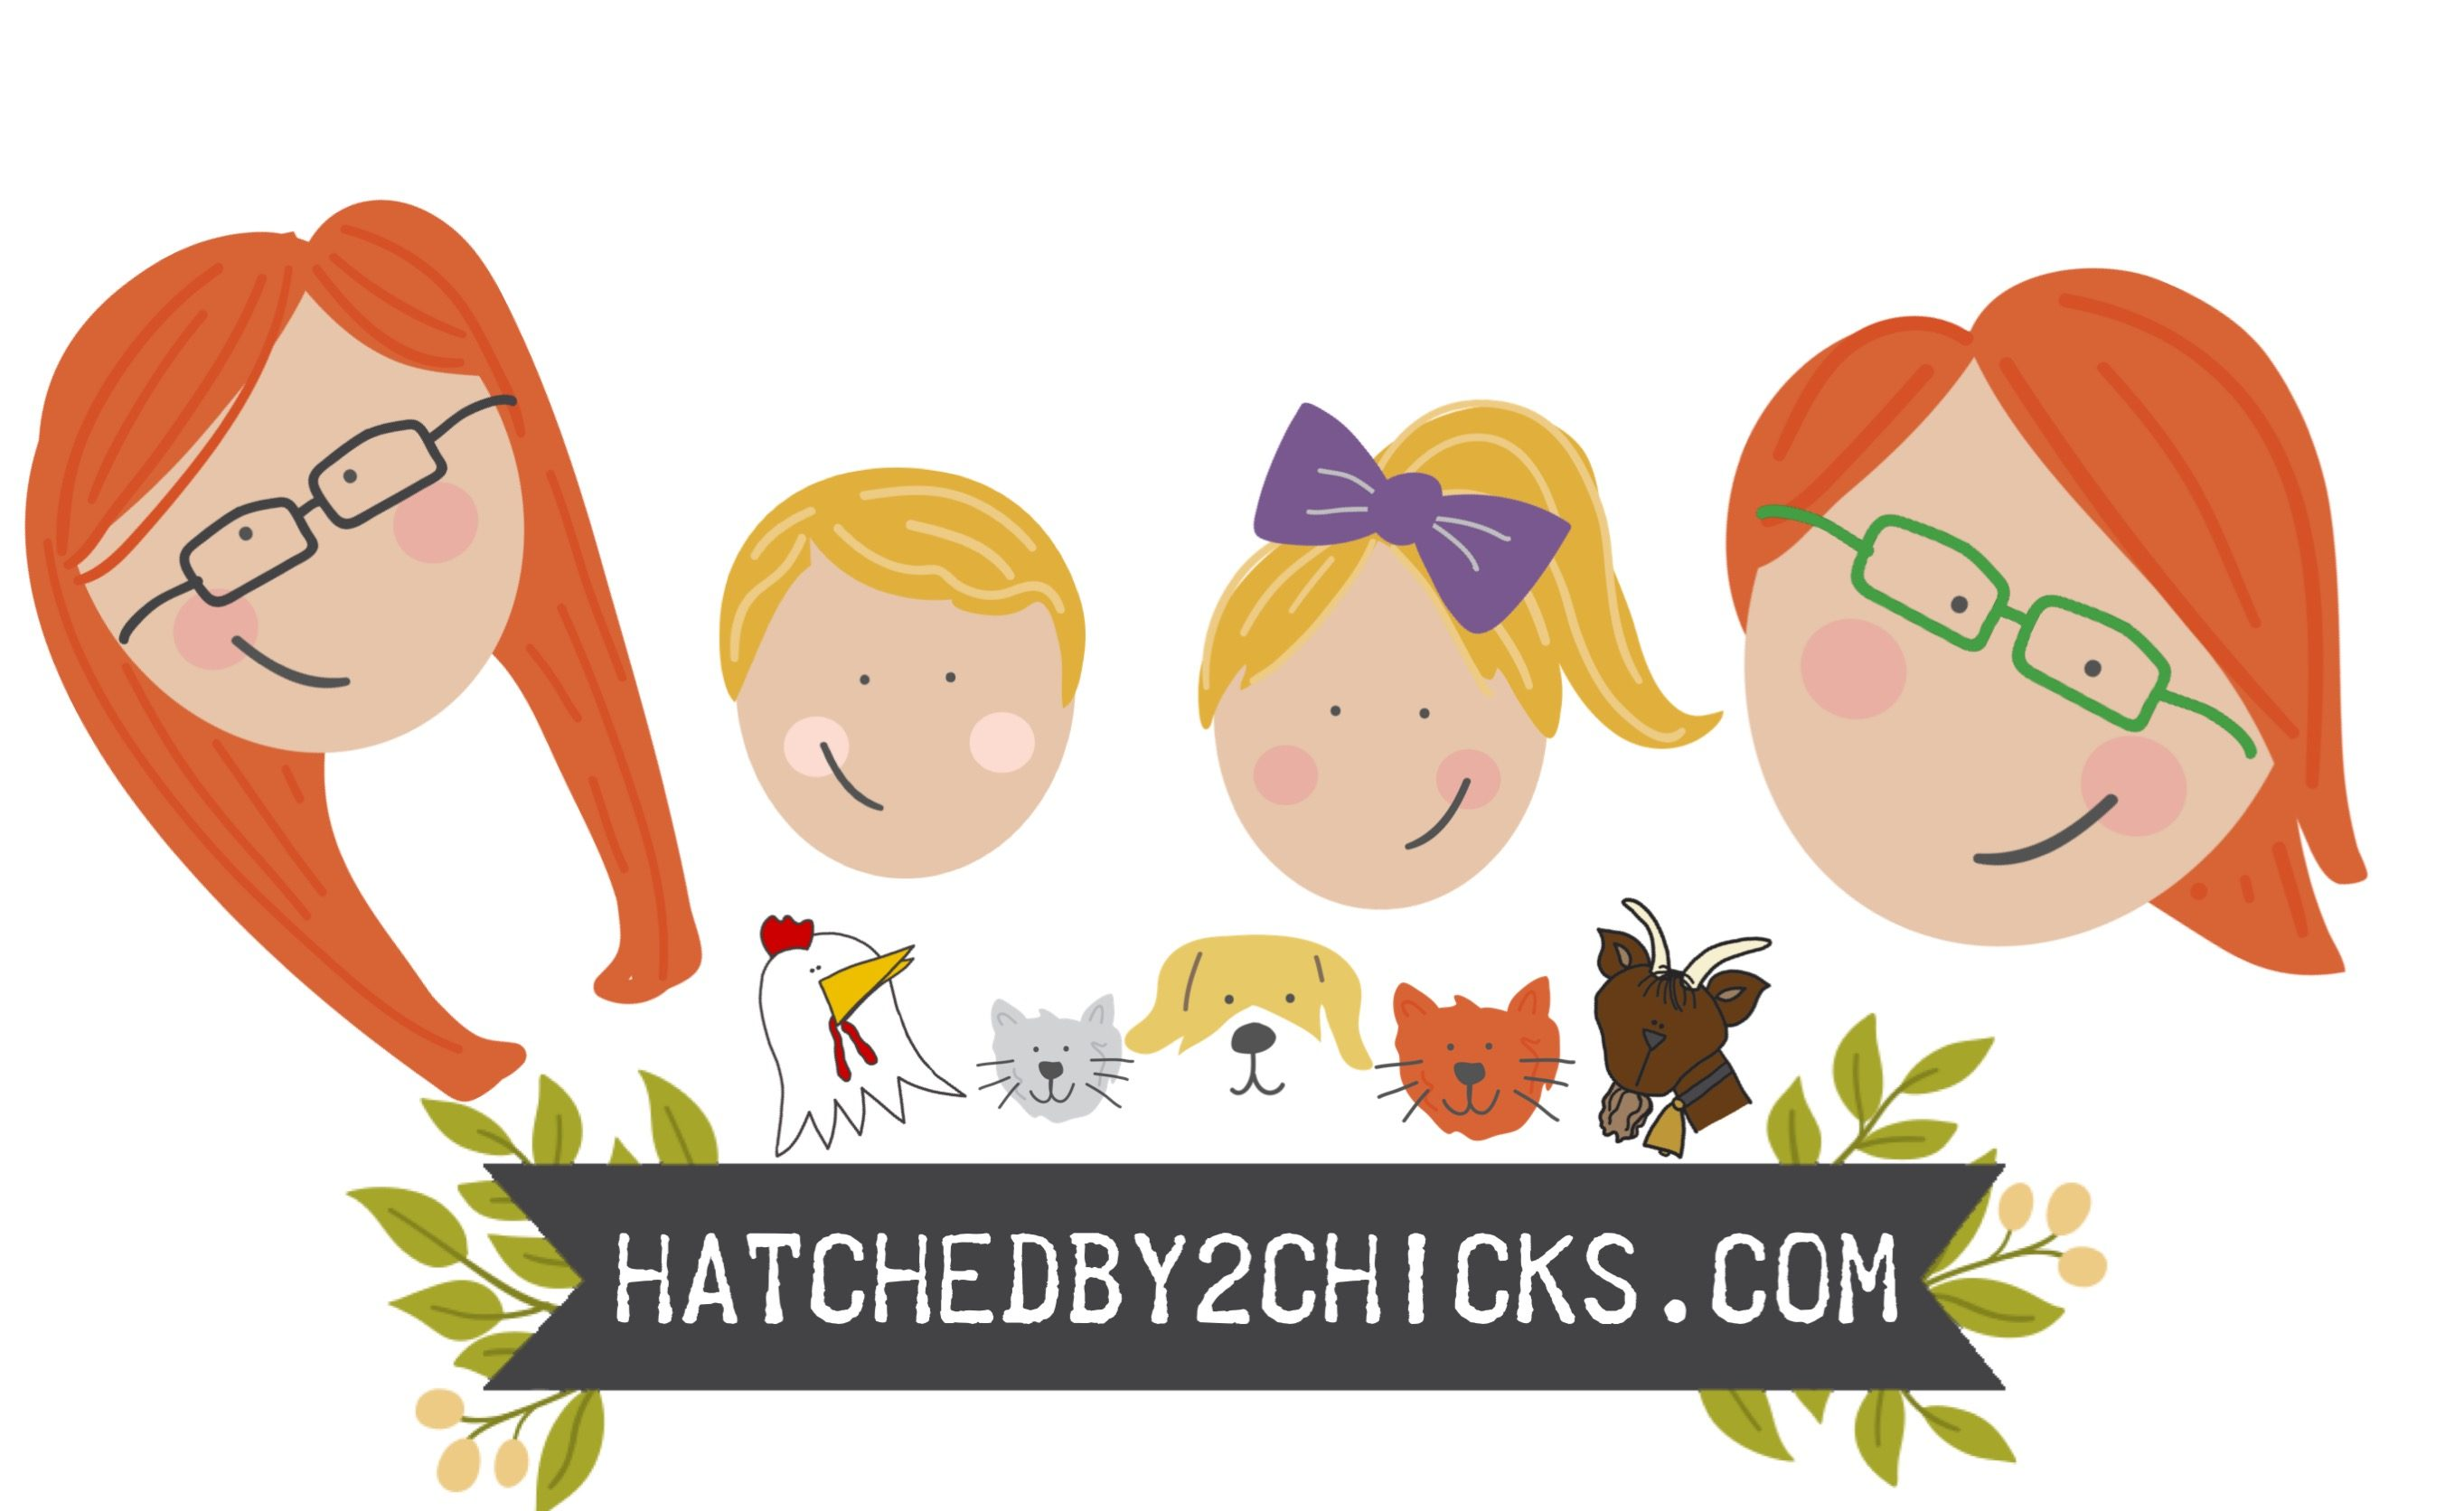 HatchedBy2Chicks.com